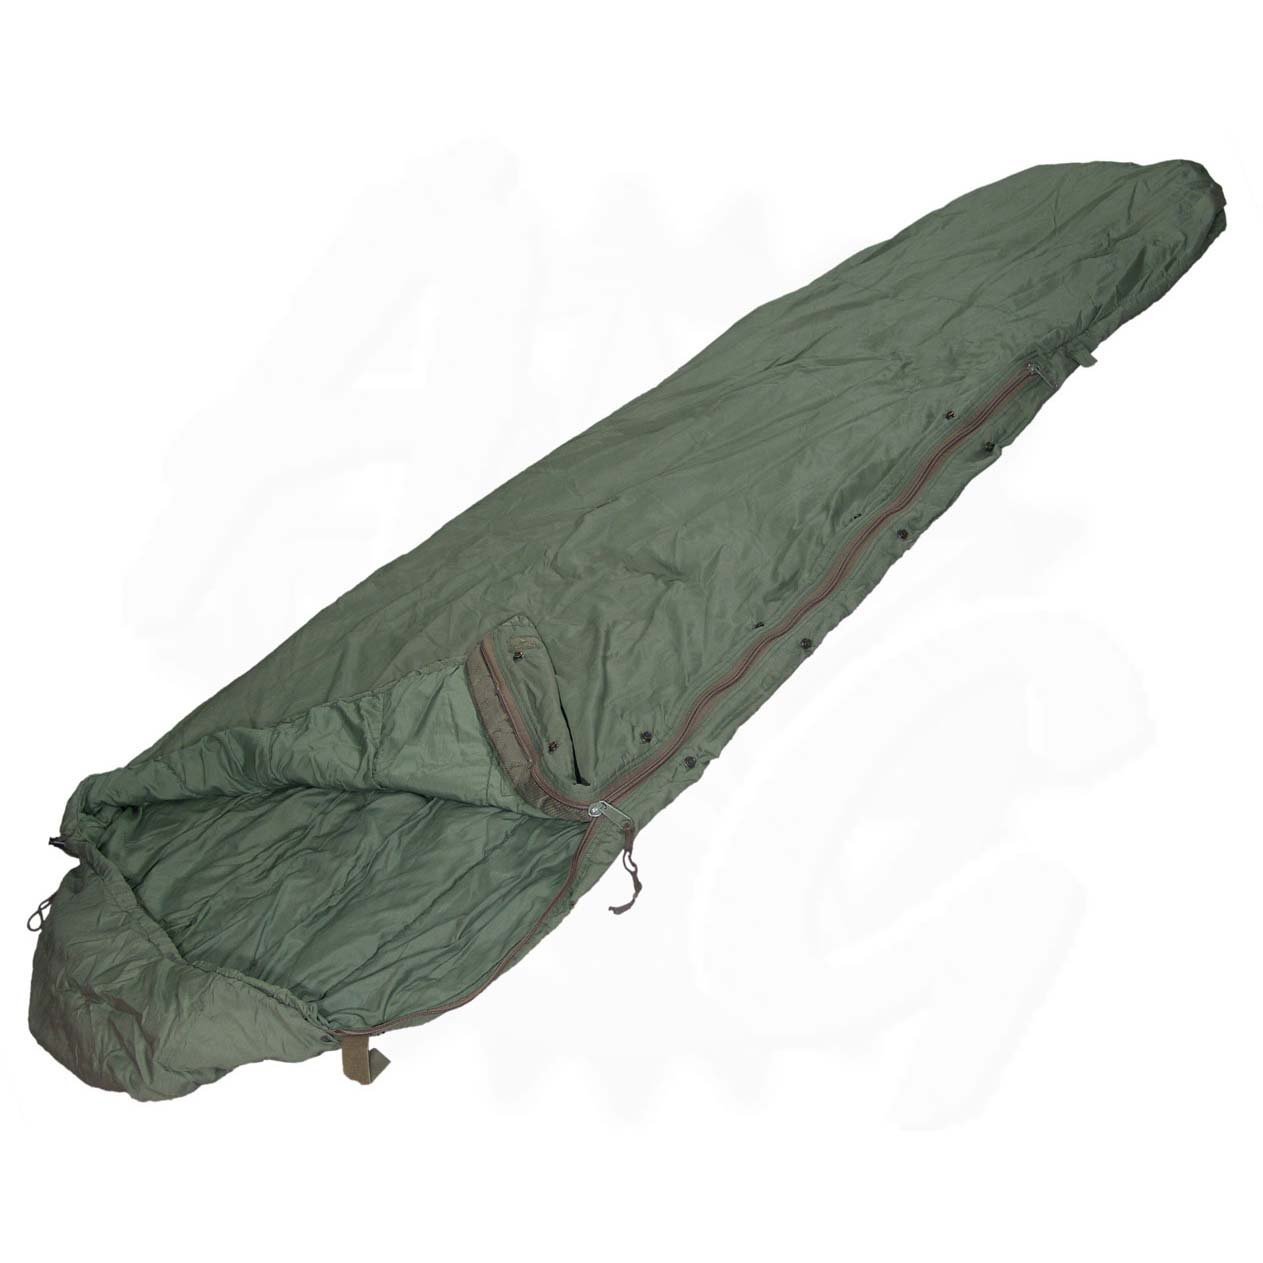 Military Outdoor Clothing Previously Issued U.S. G.I. Olive Drab Patrol Water Repellent Nylon Modular Sleeping Bag